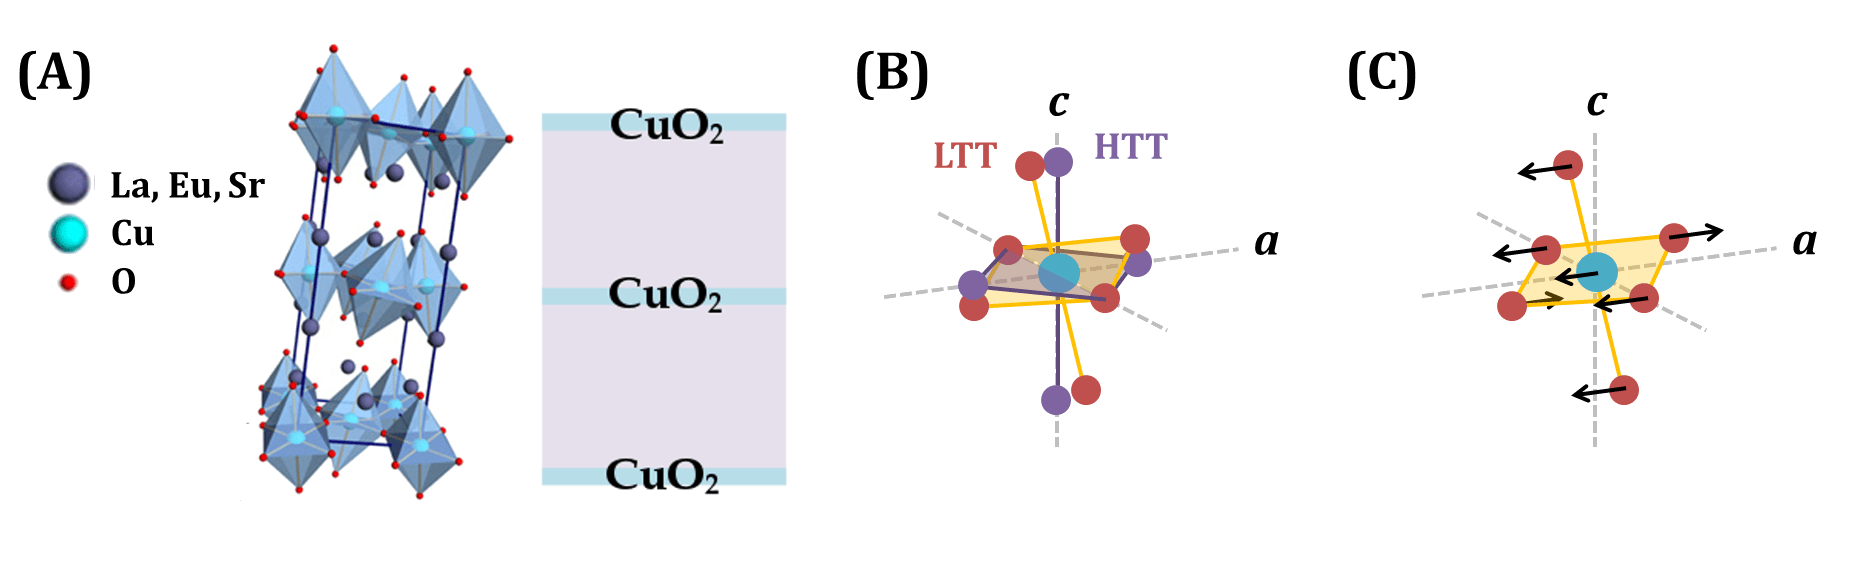 hight resolution of figure credit a crystal structure j rg harms b c c r hunt